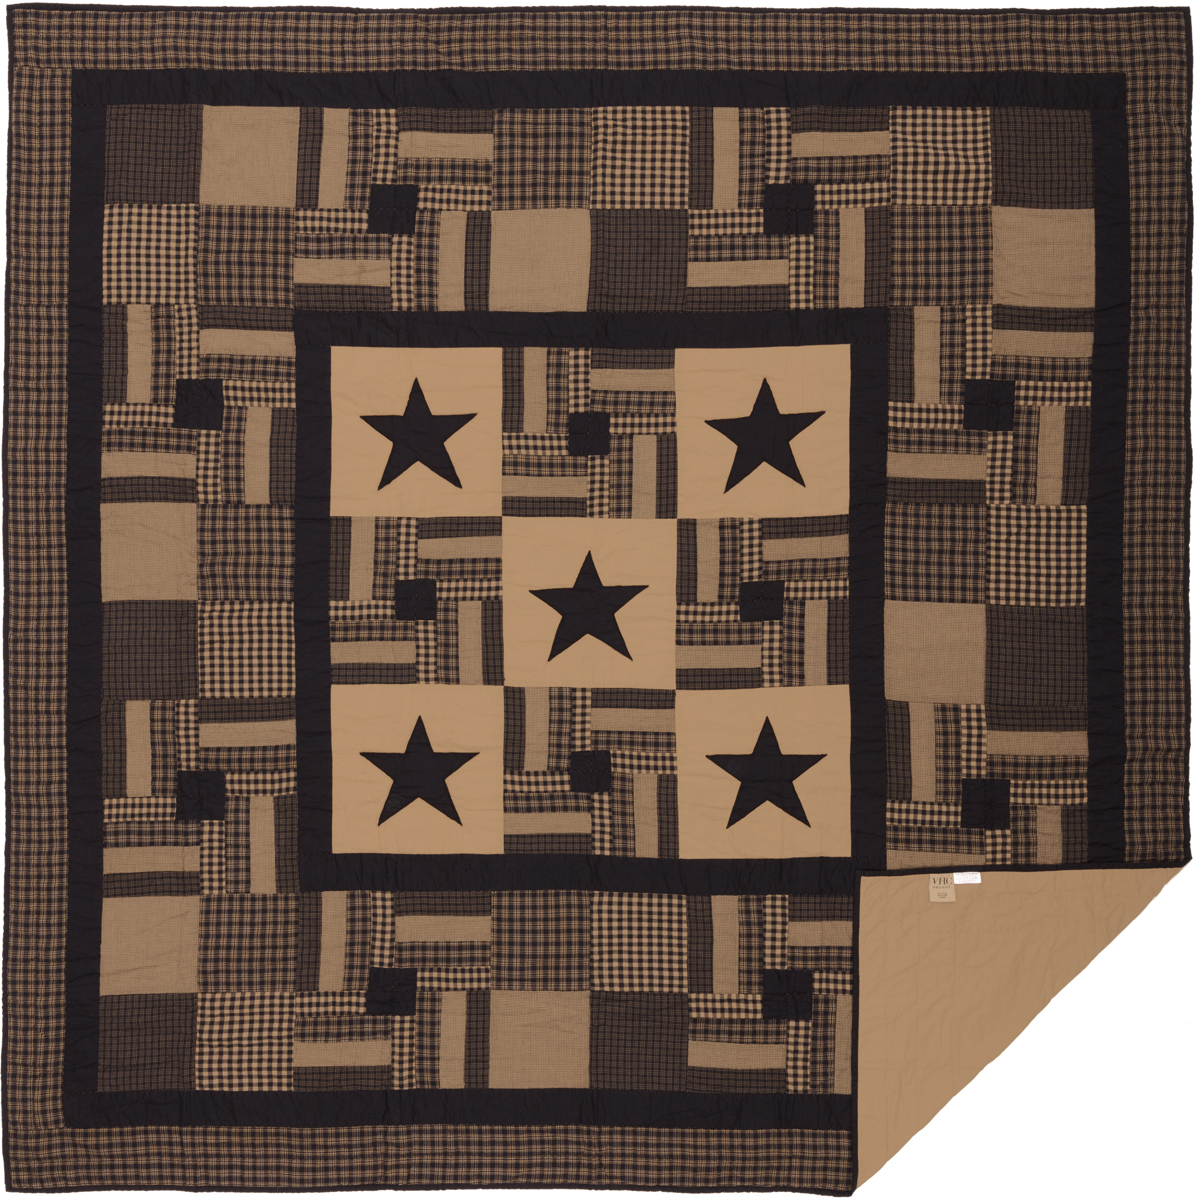 Black-Check-Star-Queen-Quilt-90Wx90L-image-2